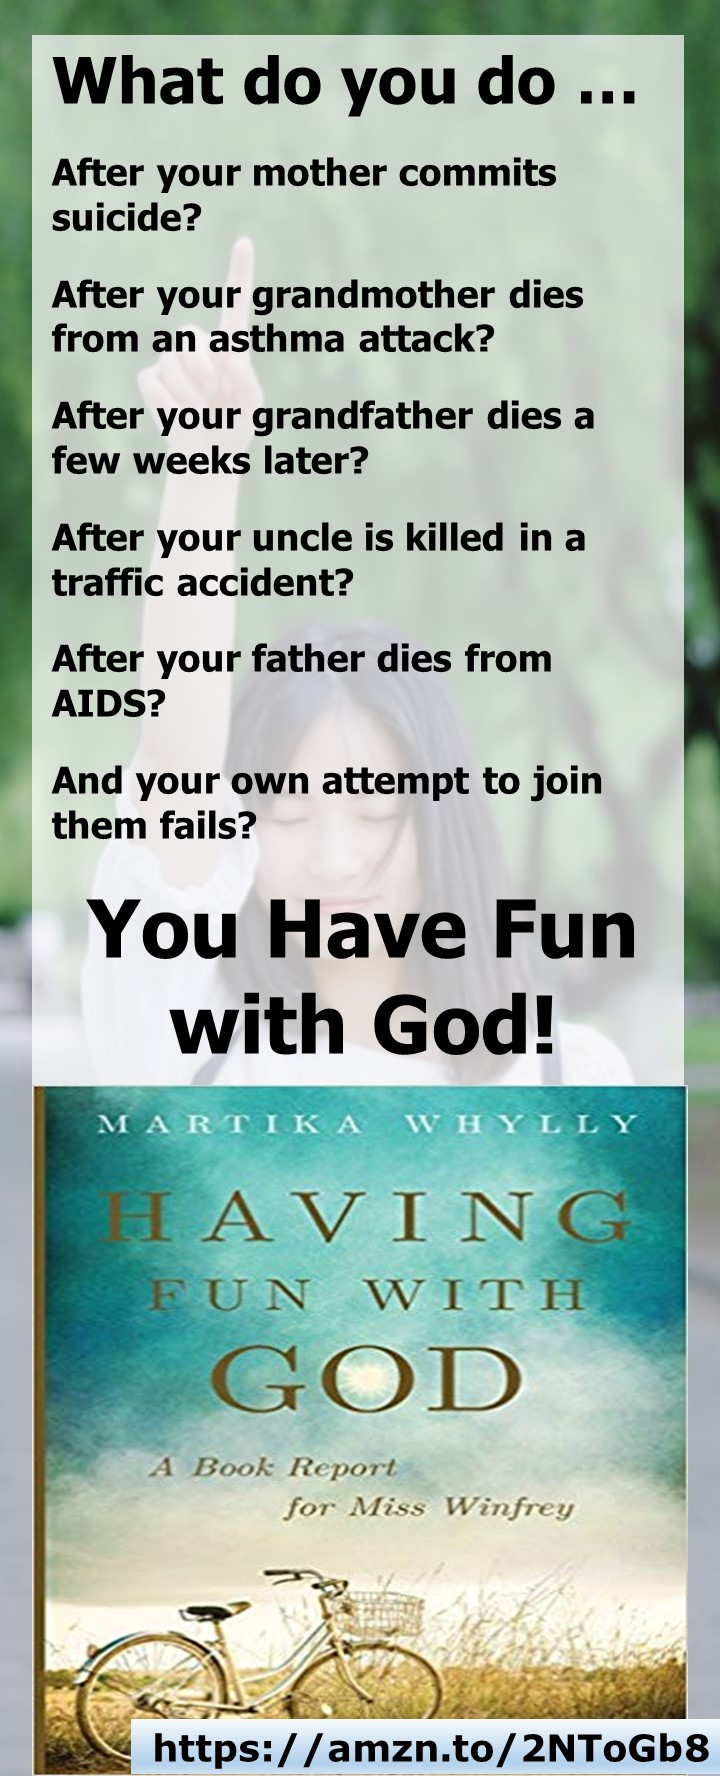 Having Fun with God: Check out this incredible memoir of death, renewal, and life: Having Fun with God by Martika Whylly.